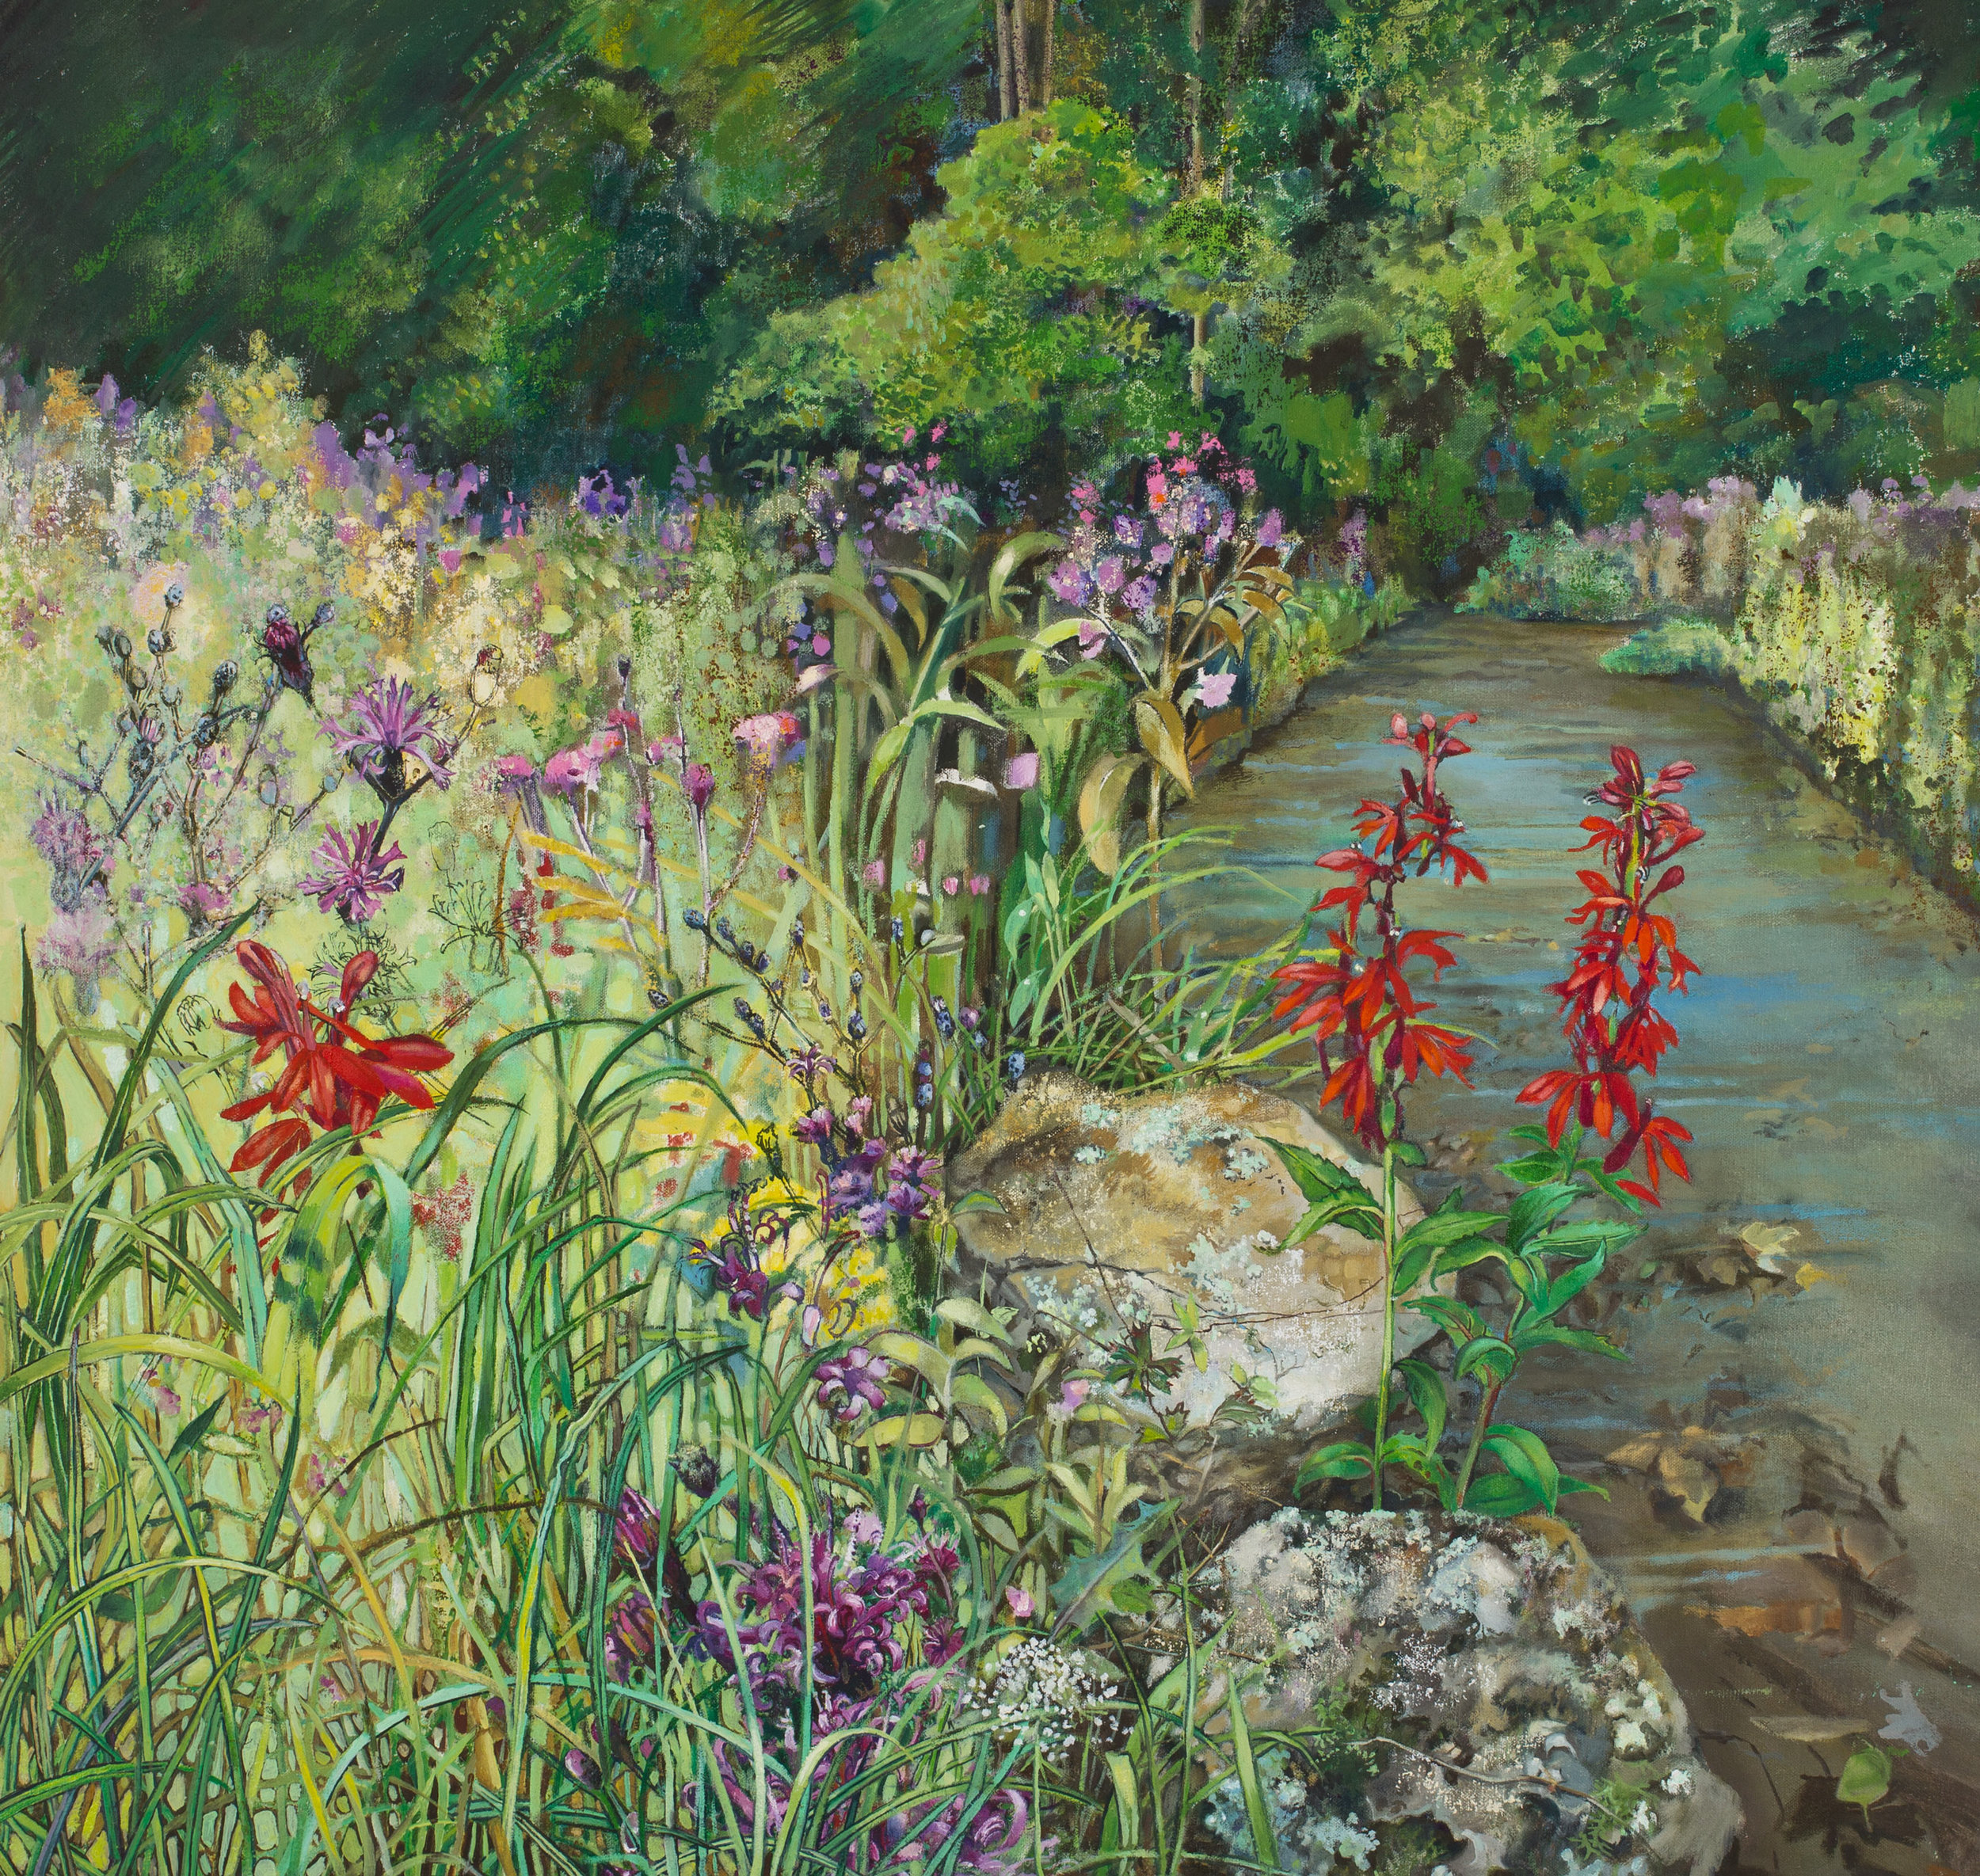 Cardinal Flowers, Meadow, Stream